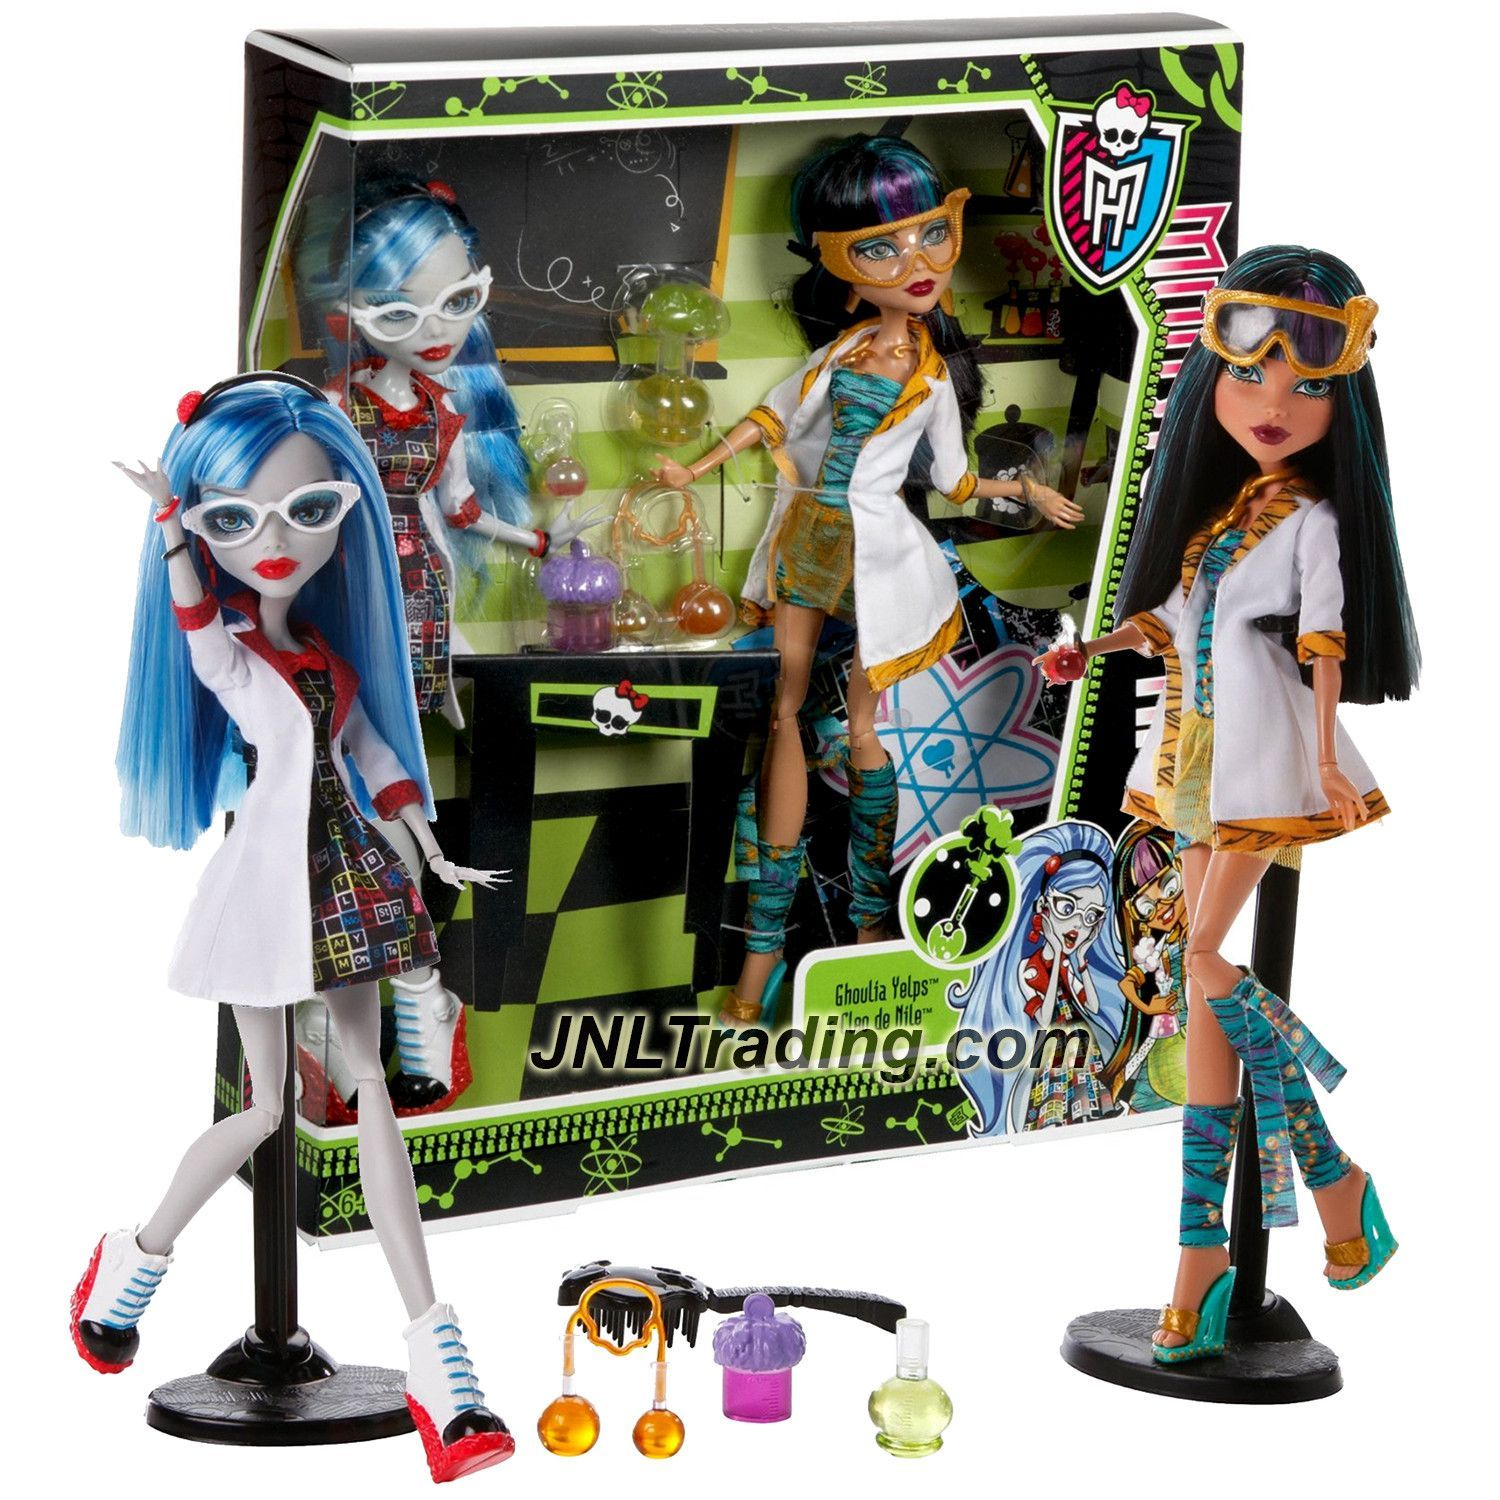 316f8686c4e9 Mattel Year 2012 Monster High Mad Science 2 Pack 11 Inch Doll - Lab  partners CLEO DE NILE and GHOULIA YELPS with Experiment Tubes and Doll  Stands